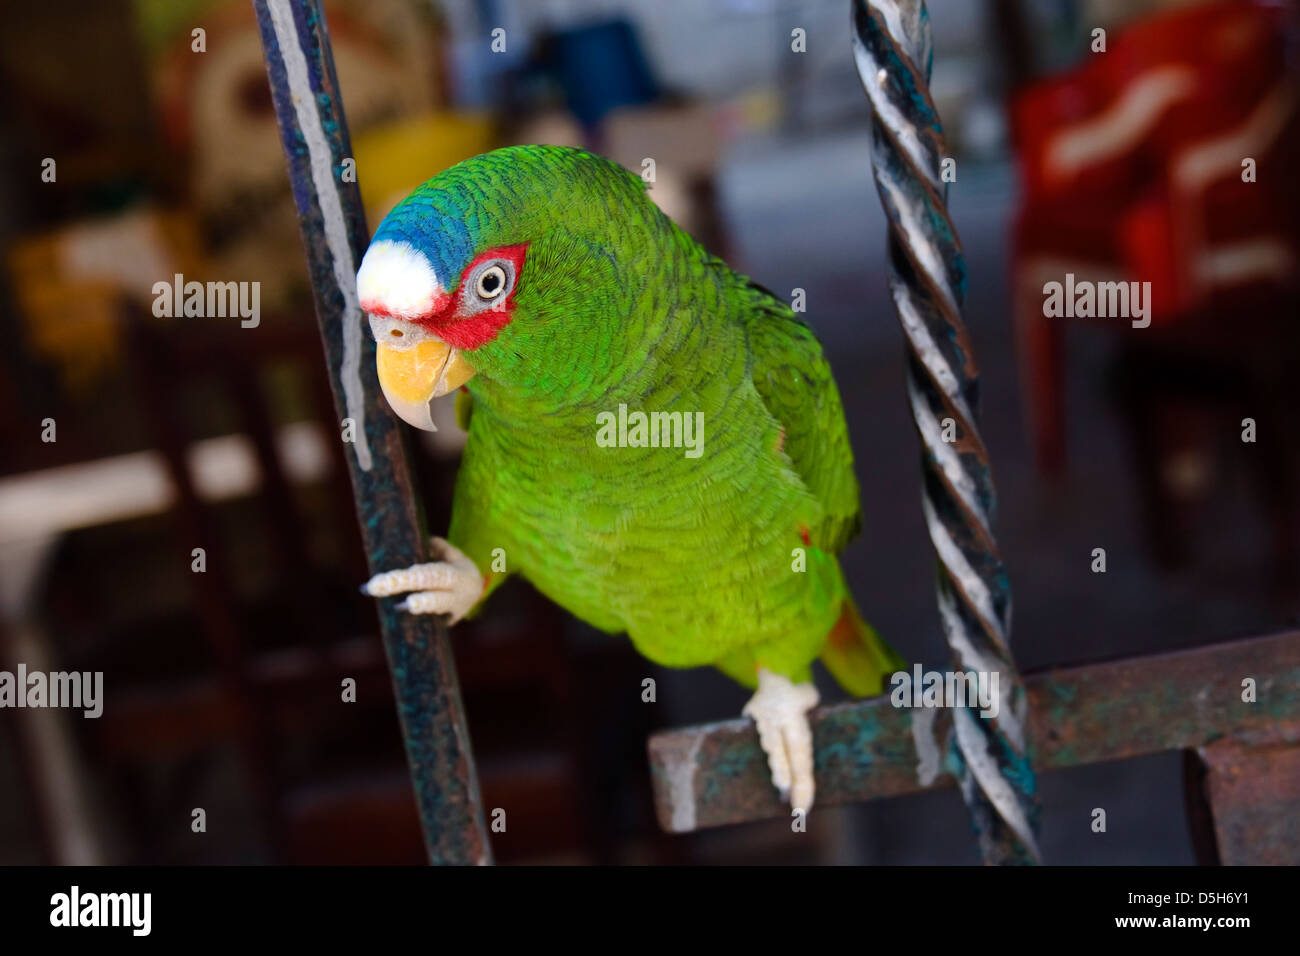 Colorful Amazon parrot perched on metal bars. - Stock Image